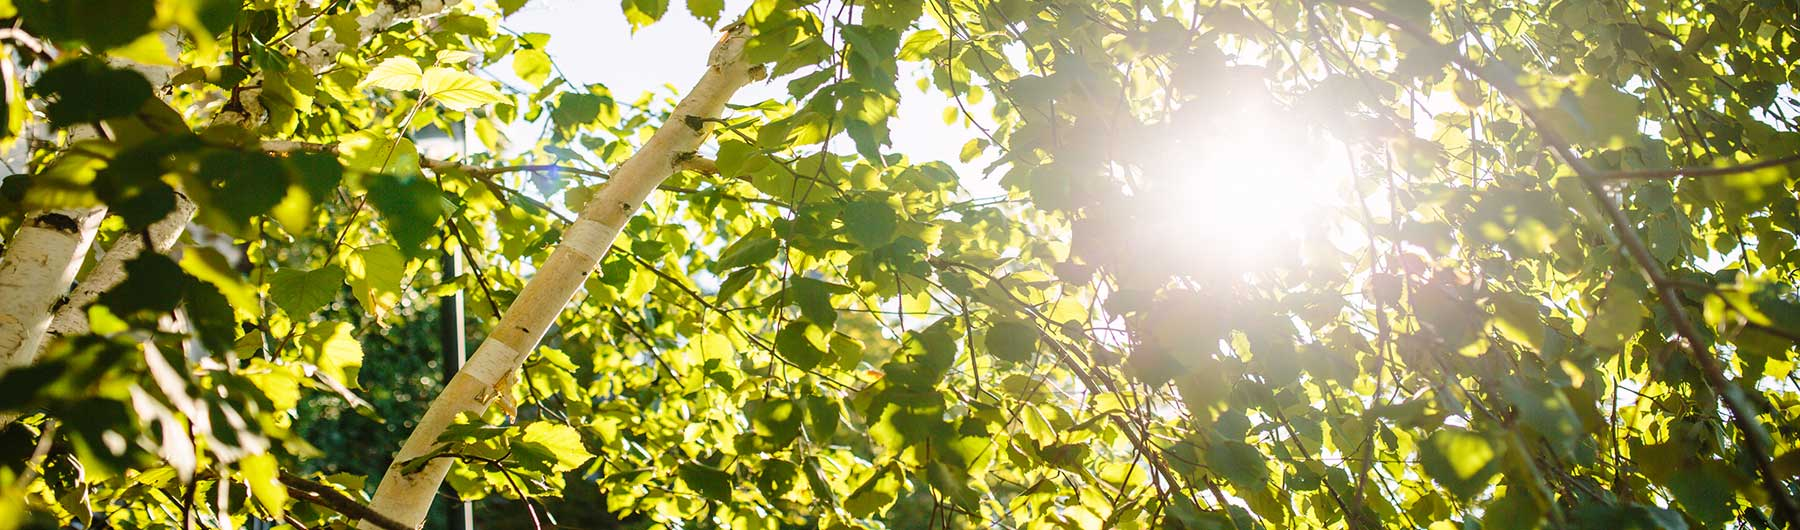 image of bright sun shining through birch tree leaves